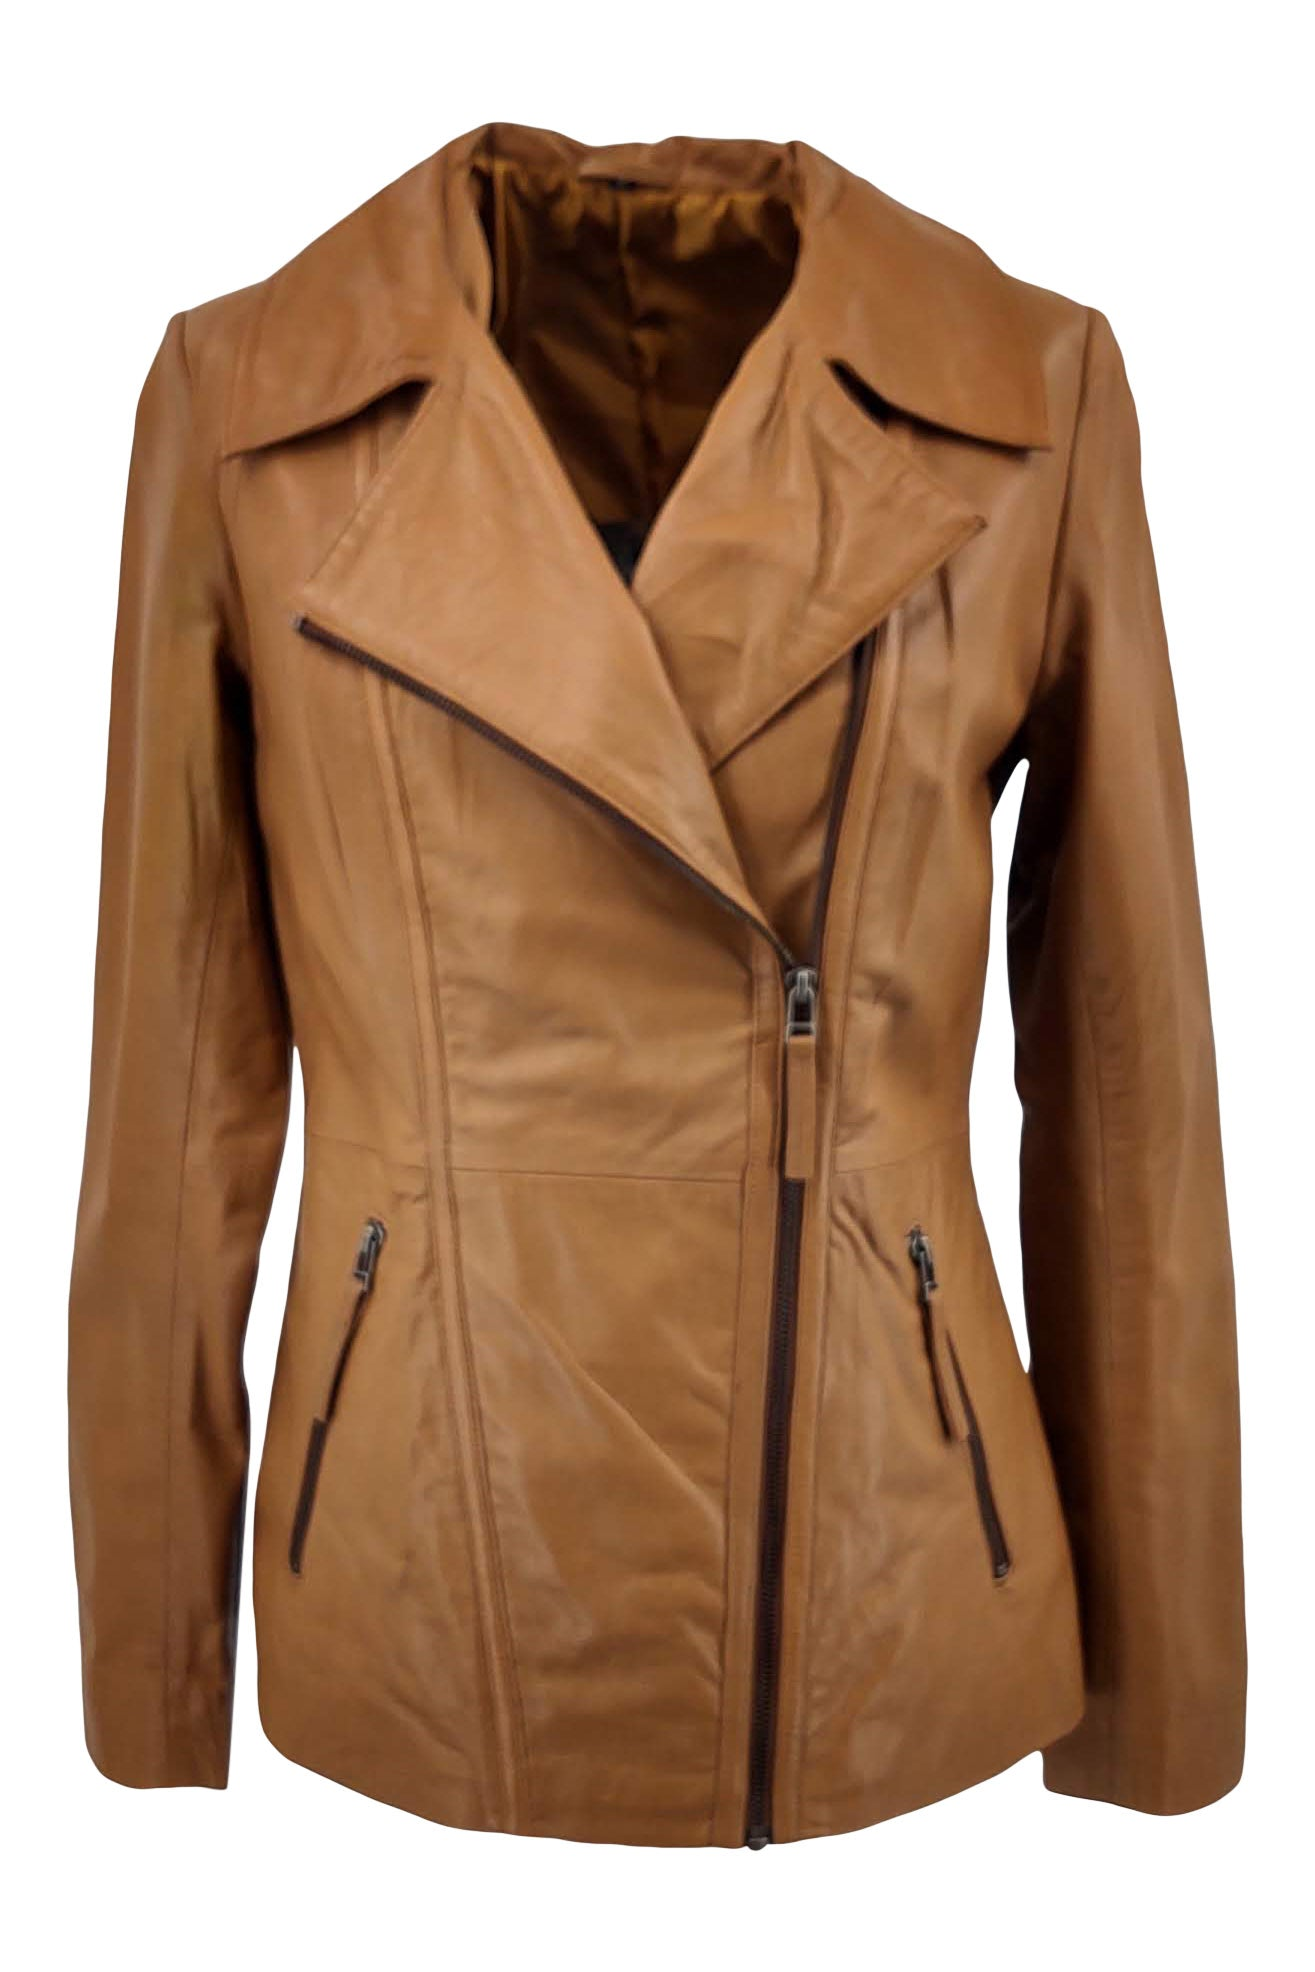 Women's Jacket - Collar - Lamb Copper Leather - Women - Tan / Læder Skinds Jakke - Levinsky - Kvinde | STAMPE PELS